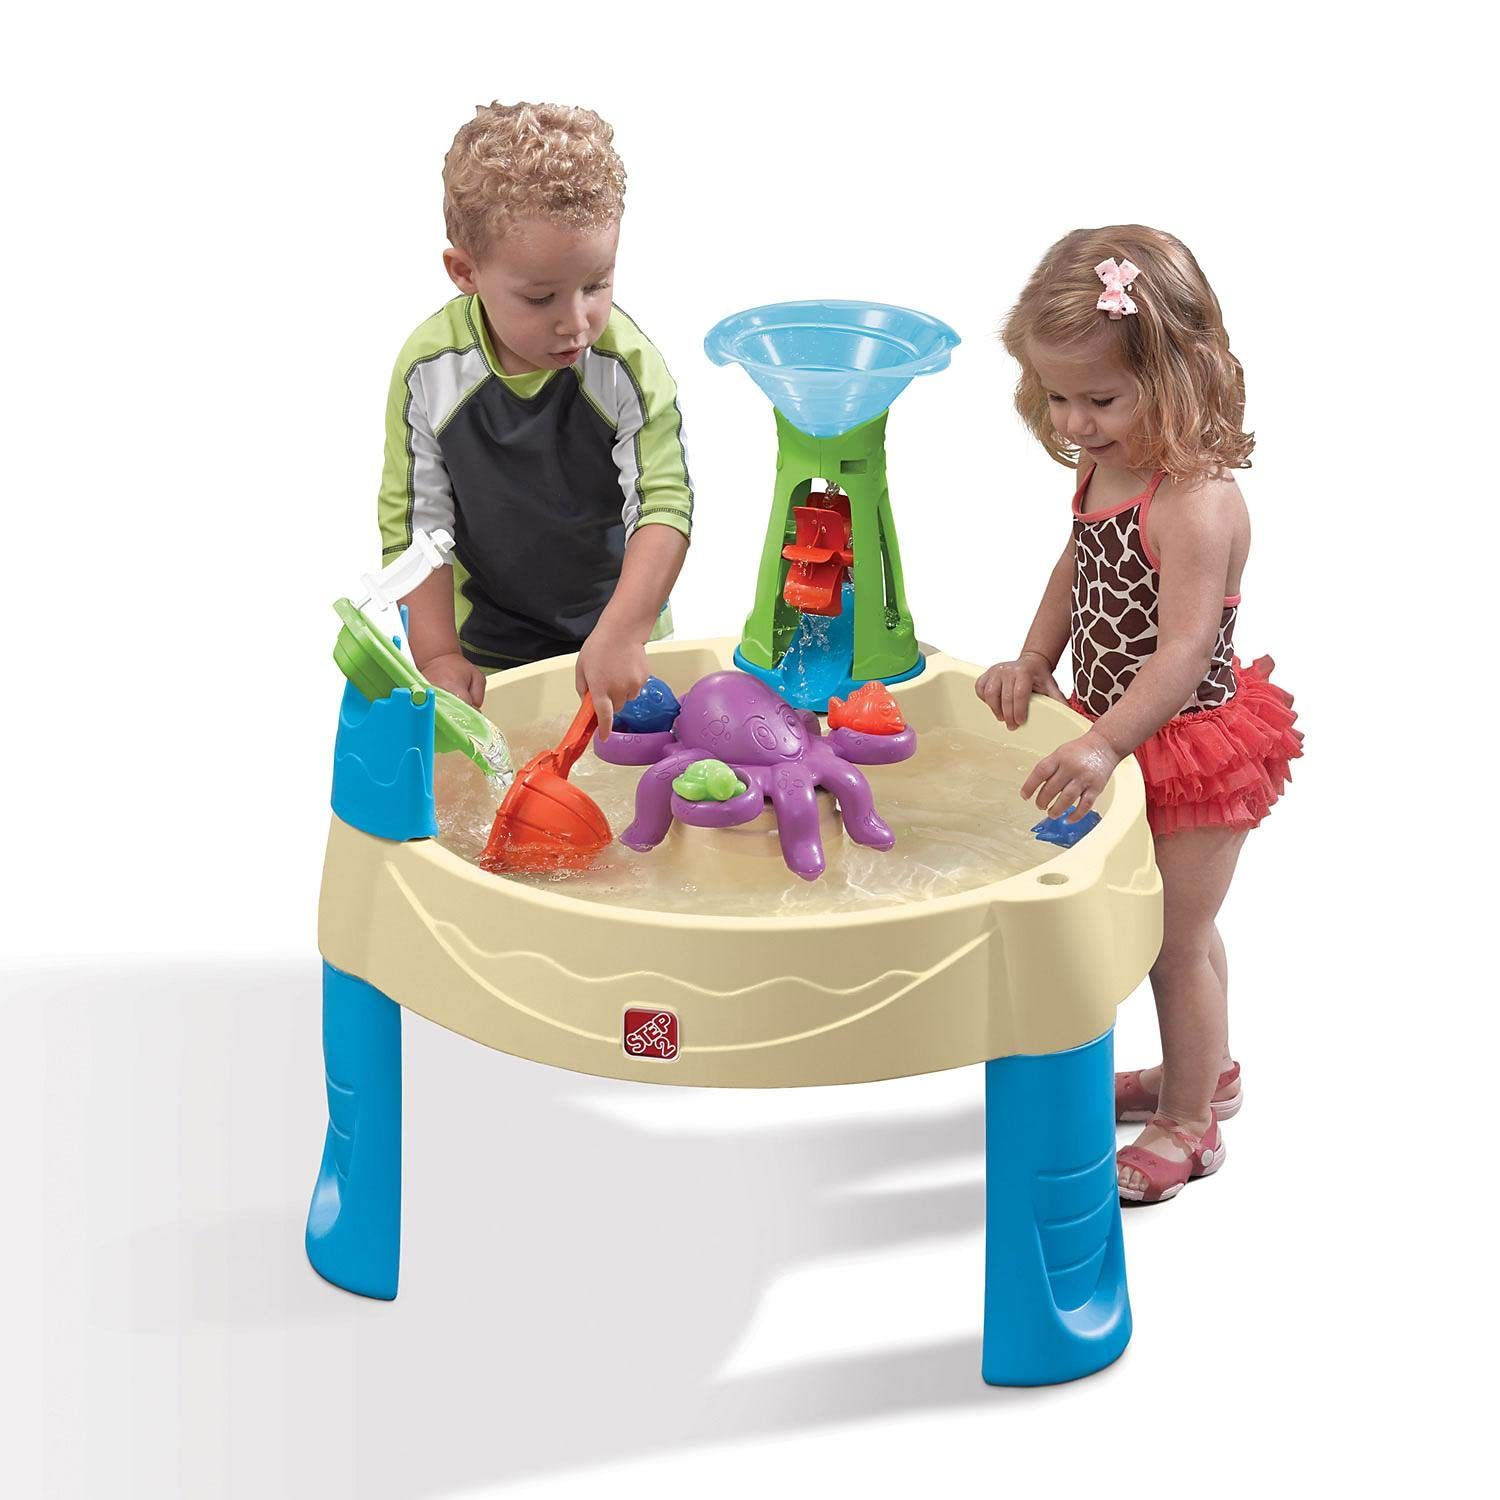 SC Products Water Table Wild Whirlpool Kids New Brand Step Piece Accessory Set First Steps Includes